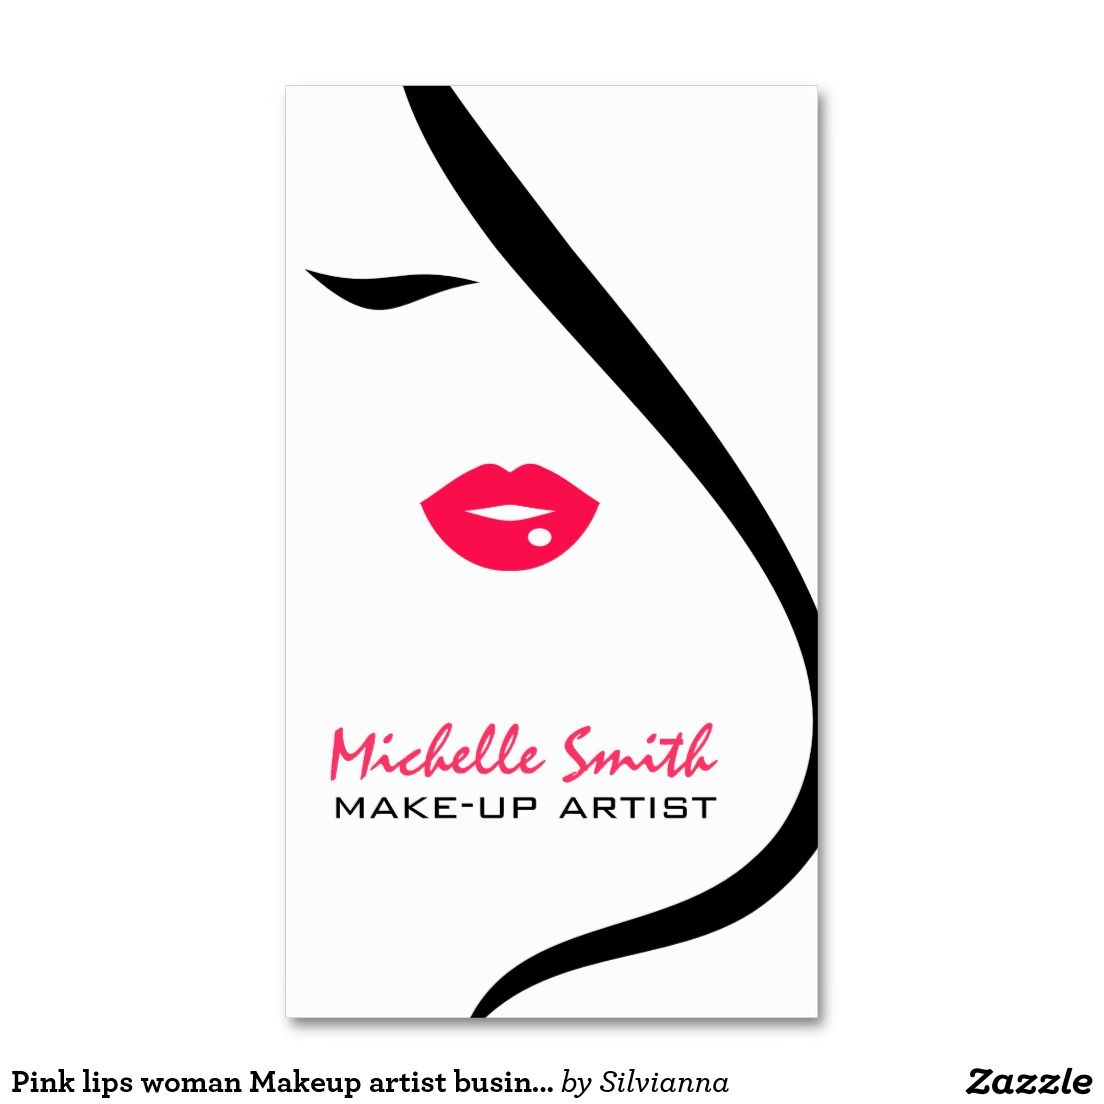 Pink lips woman makeup artist business card design business cards pink lips woman makeup artist business card design business cards alramifo Image collections